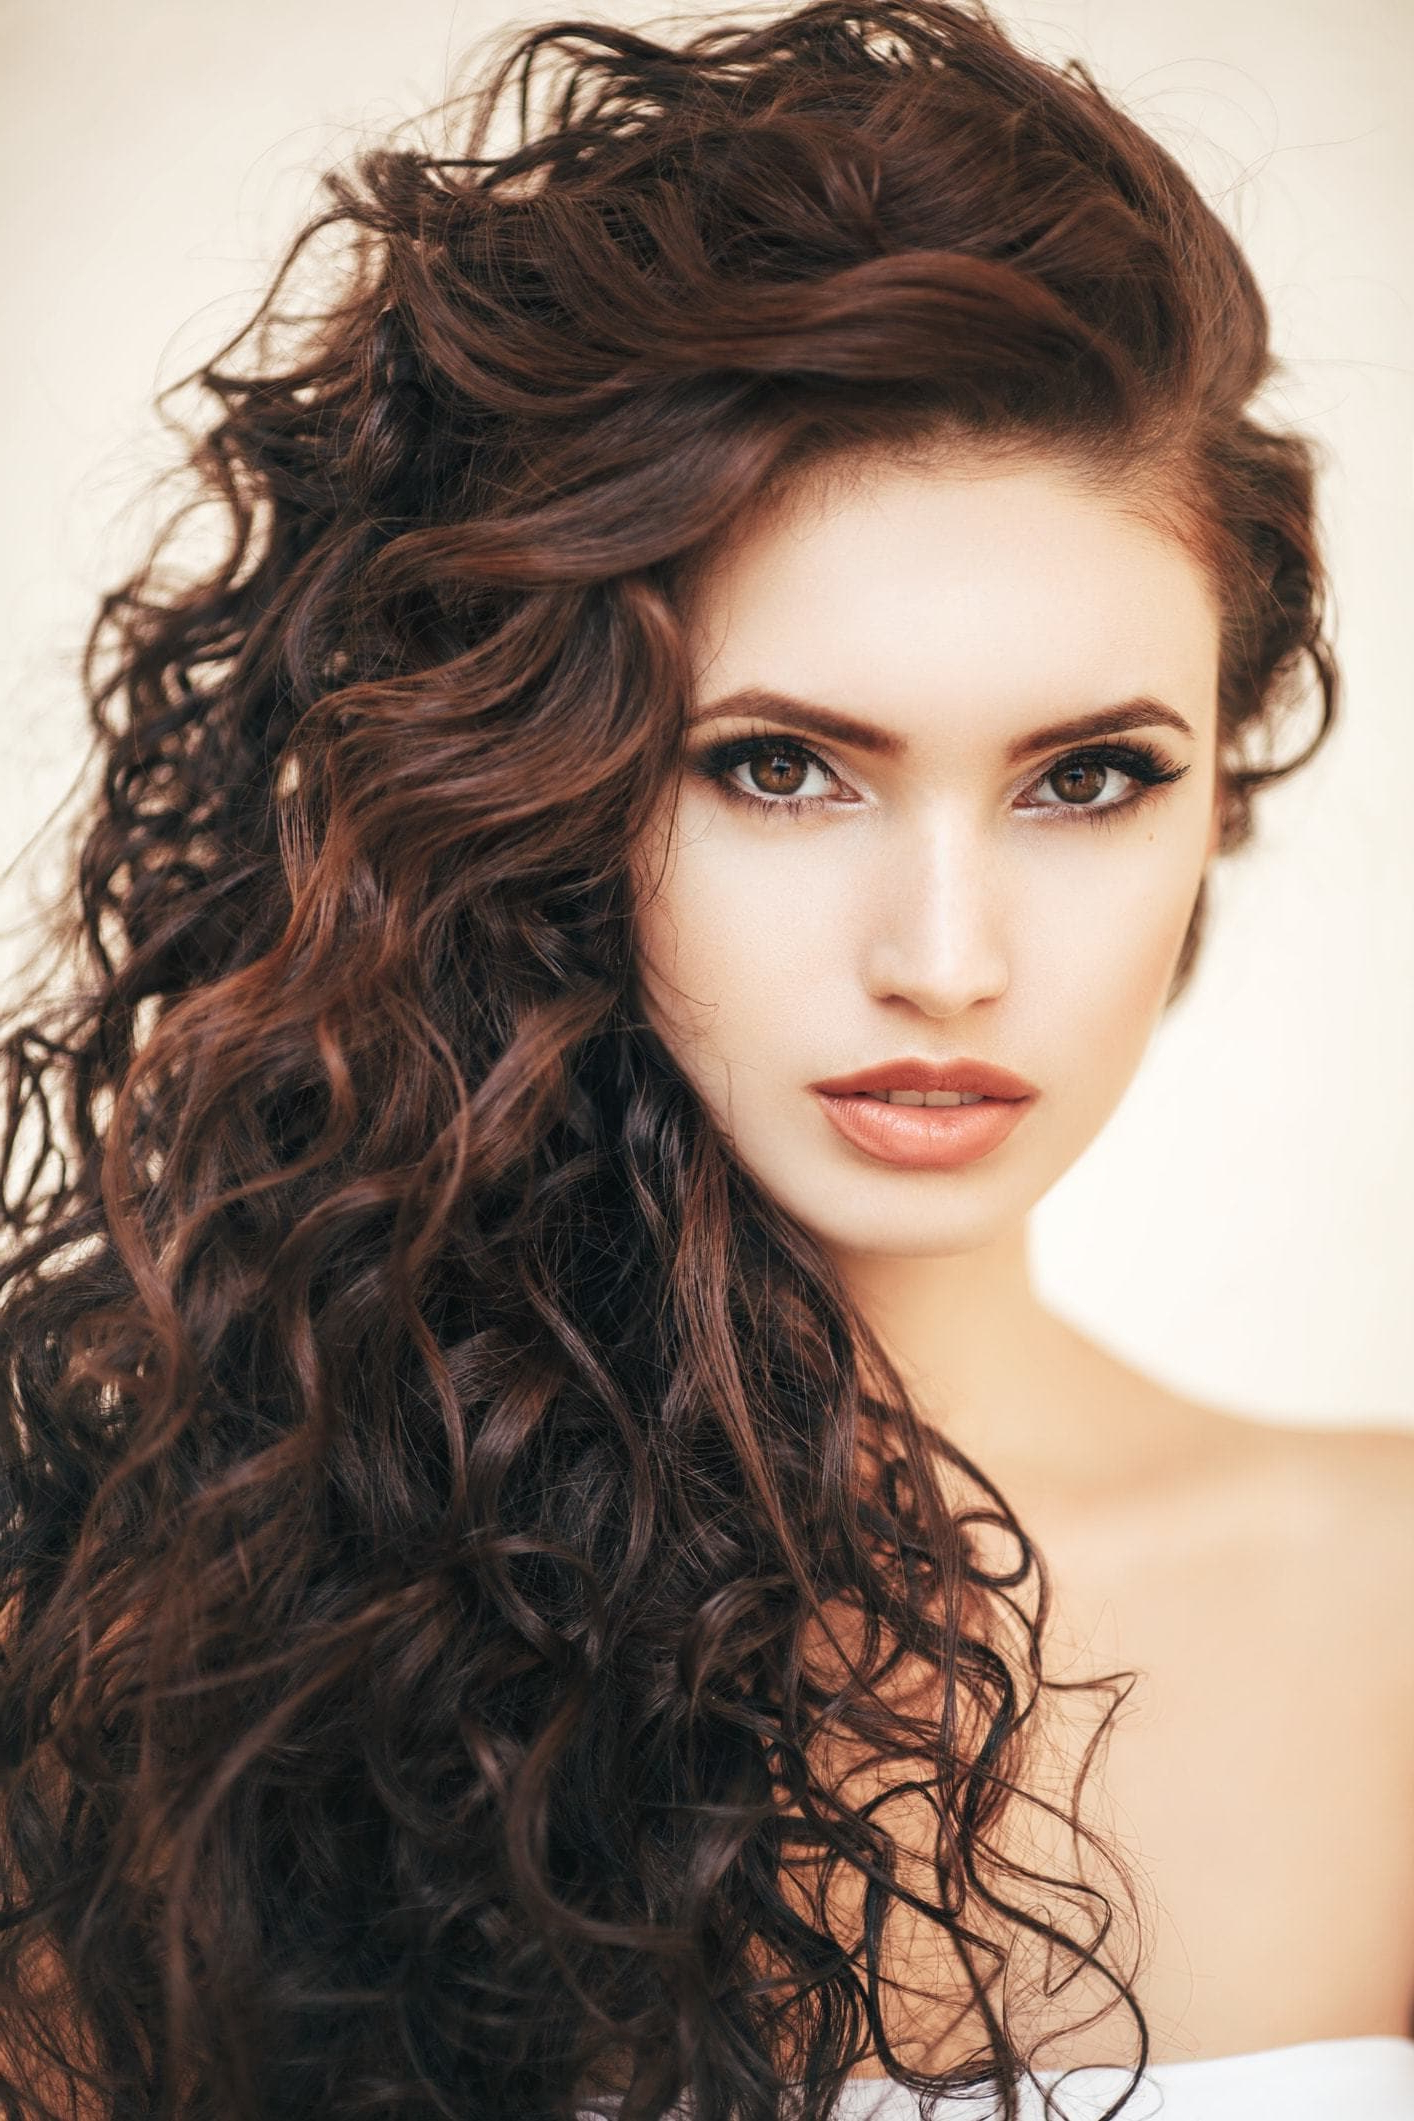 Long Hair With Short Layers: The Secret To Built In Volume In 20 Looks Pertaining To Long And Short Layers (View 14 of 25)